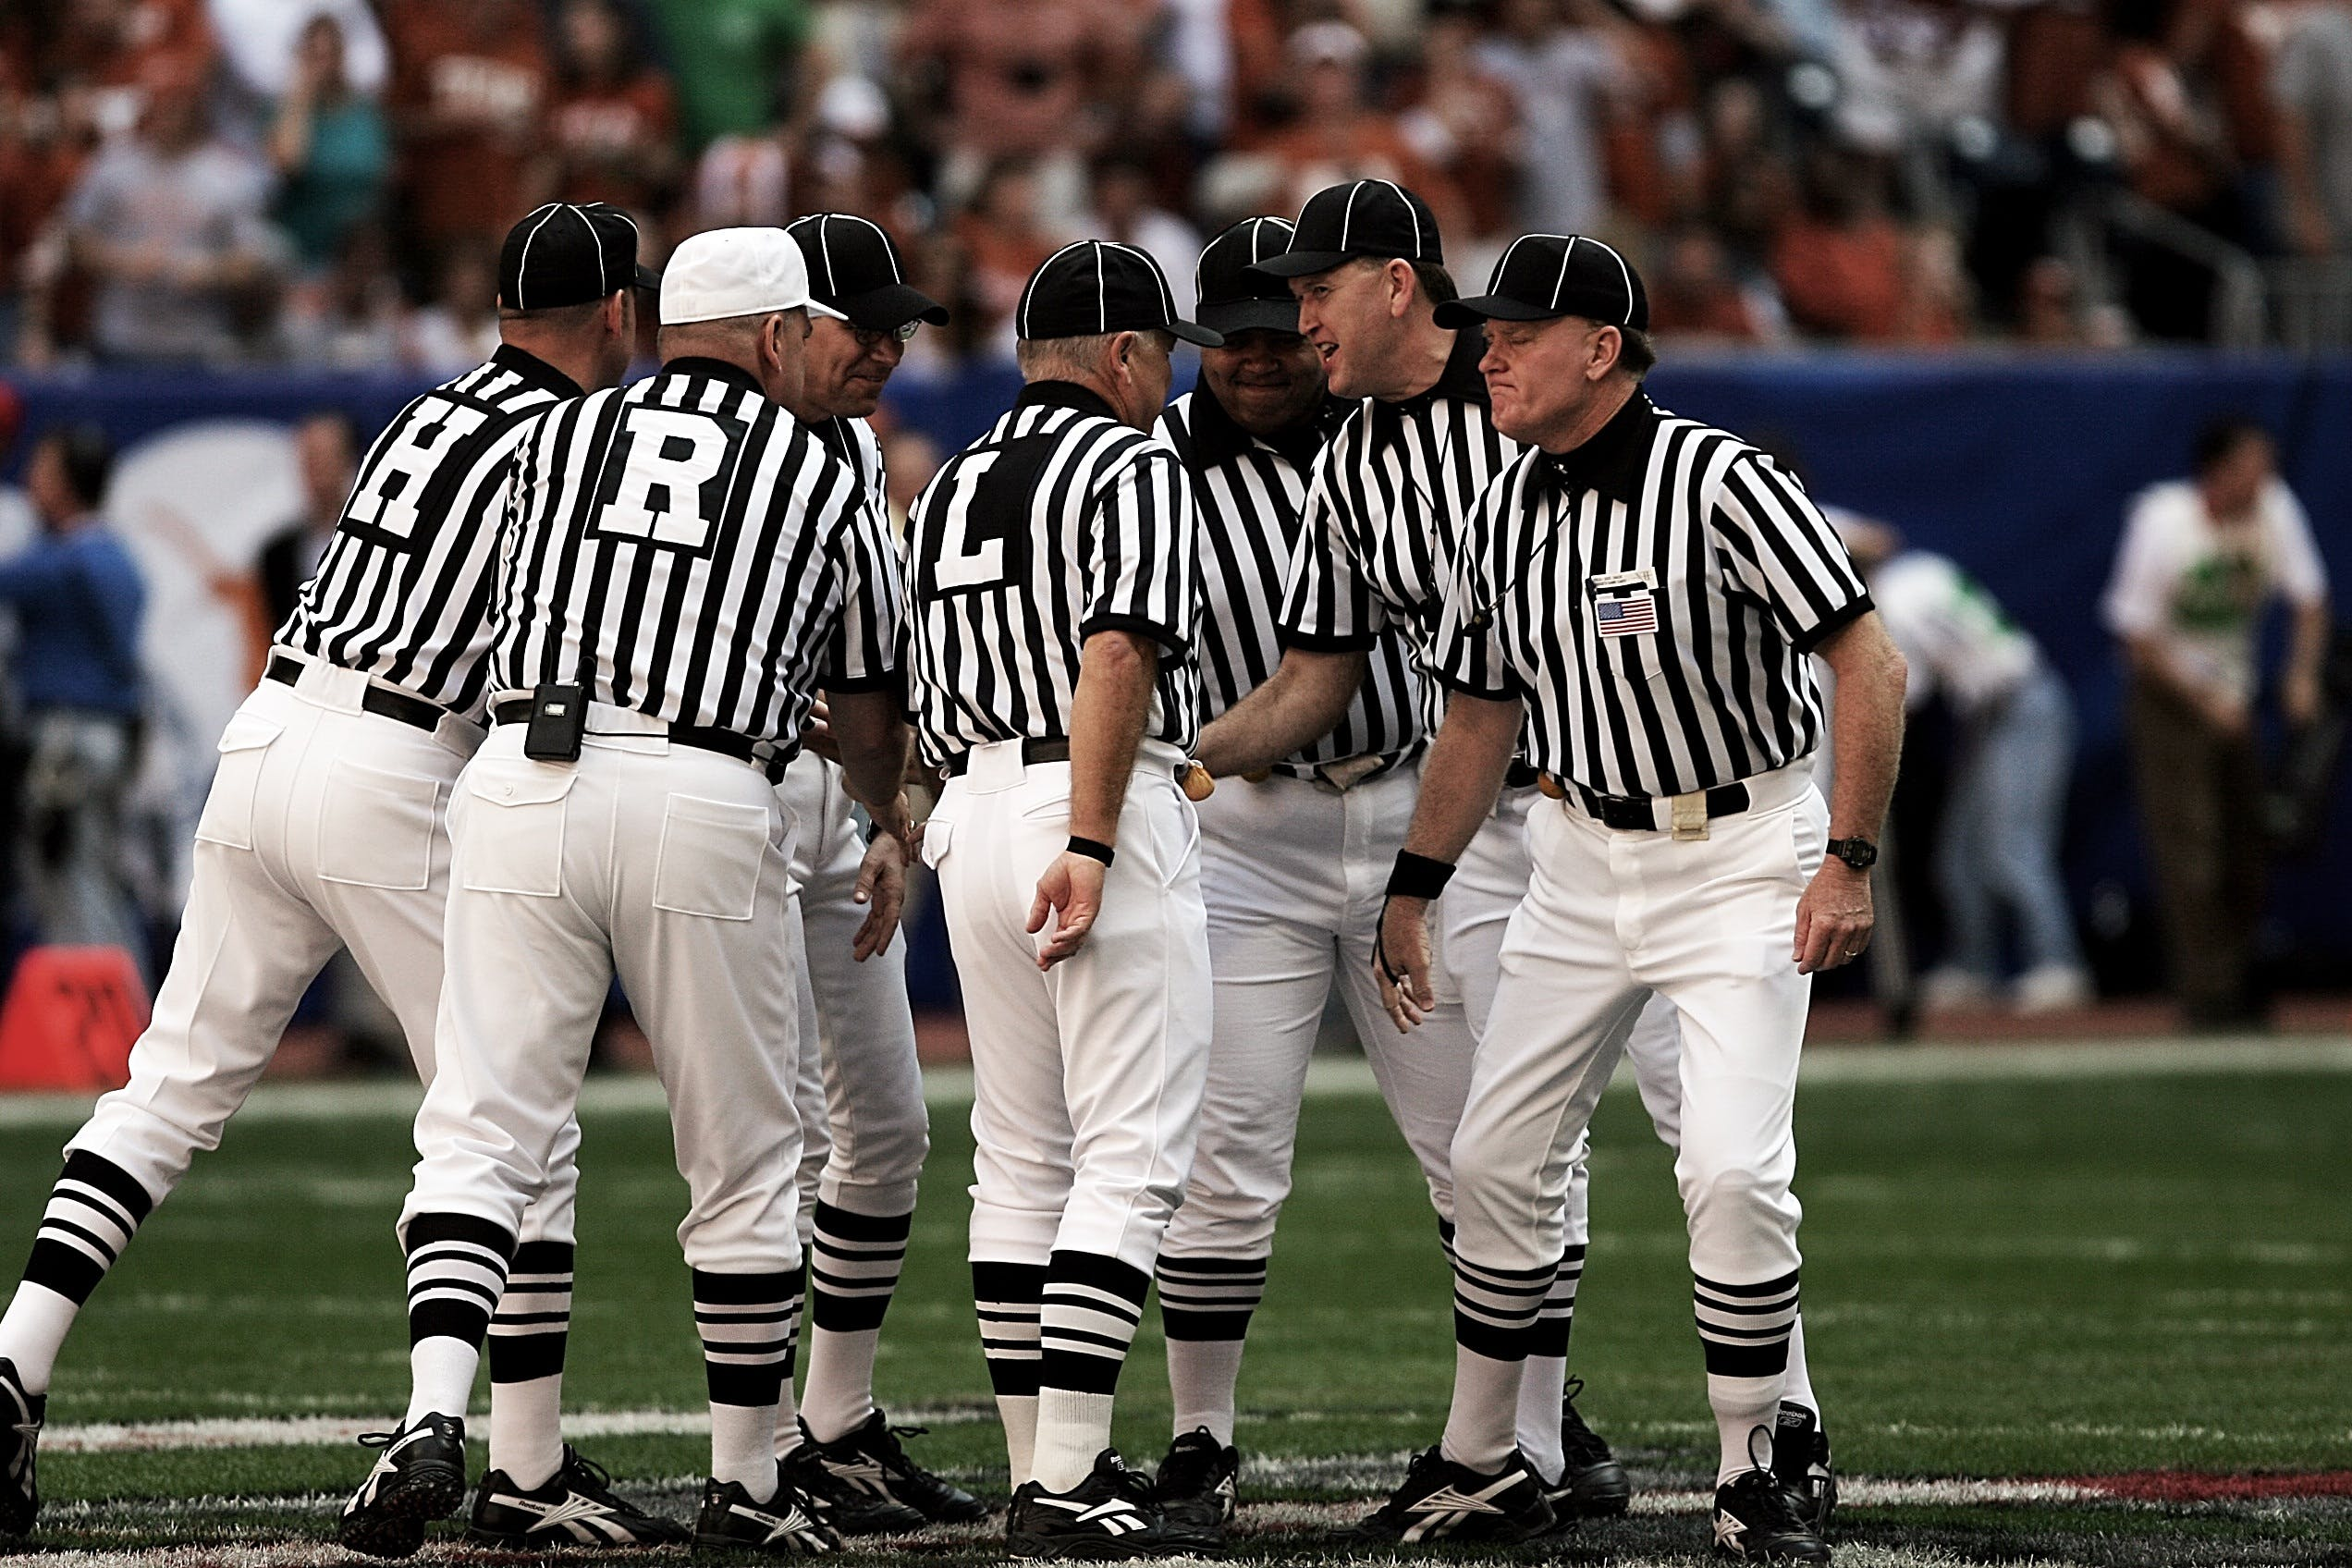 8 Football Referees in the Field